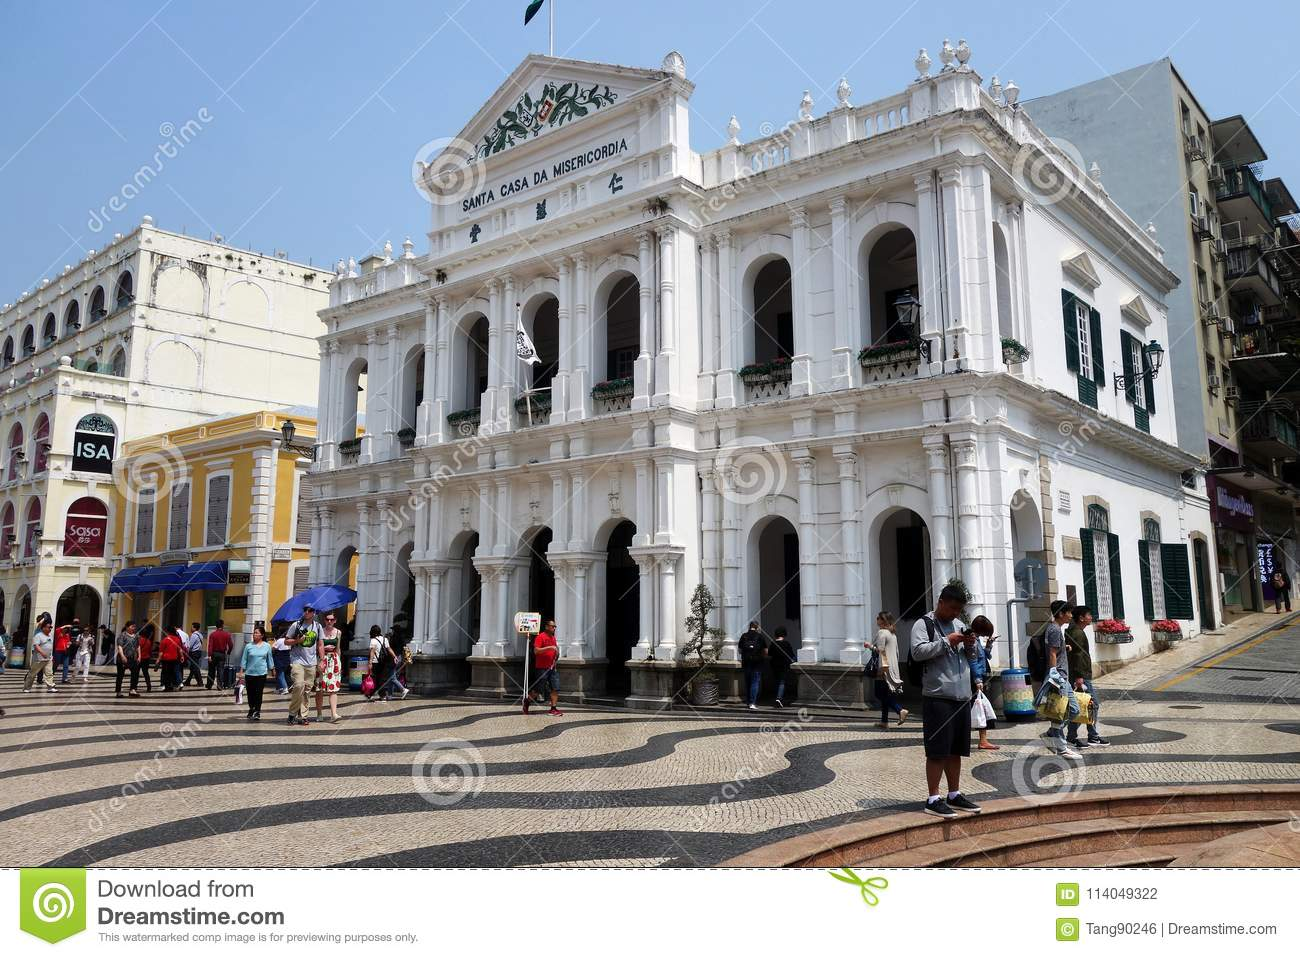 The Holy House of Mercy Museum in Macau